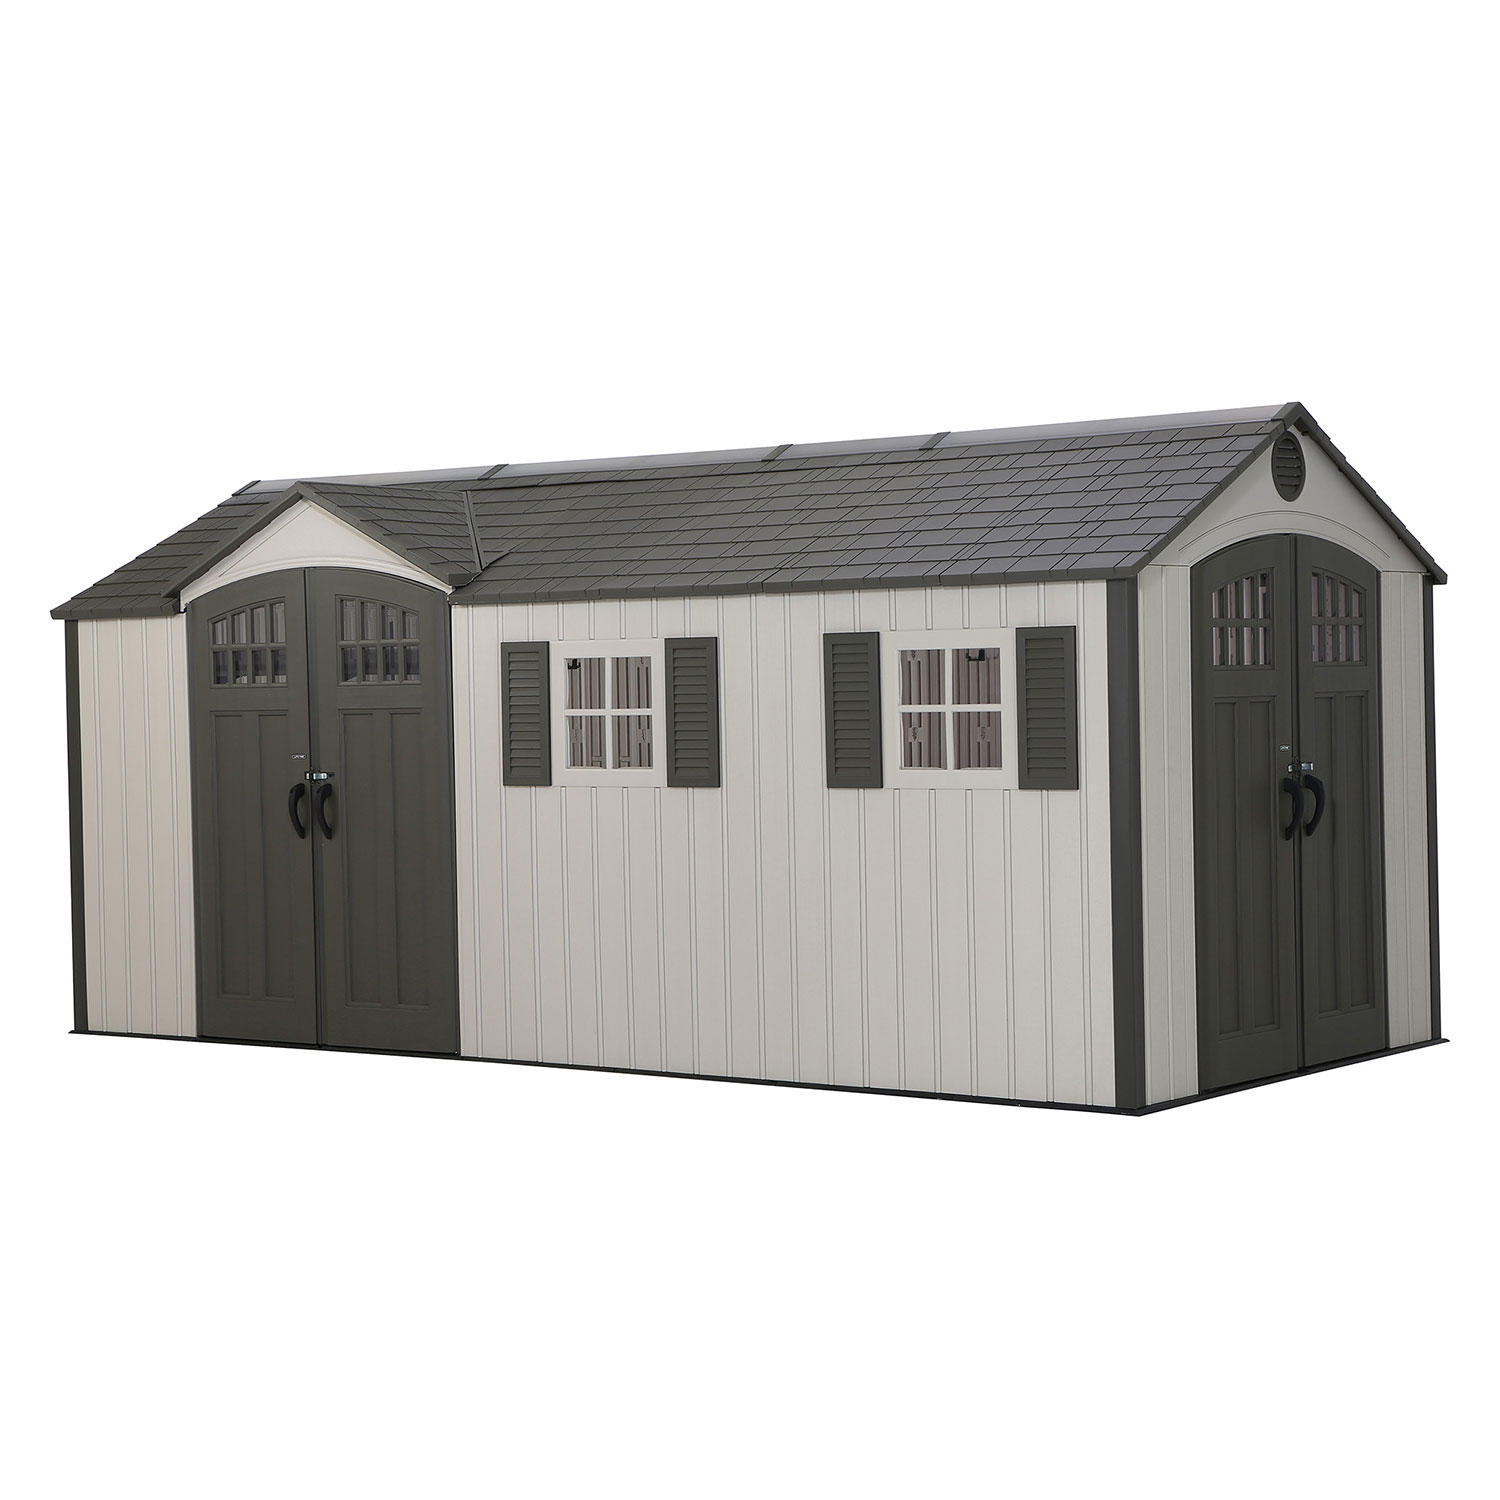 Lifetime 8x17.5-Foot Dual-Entry Storage Shed